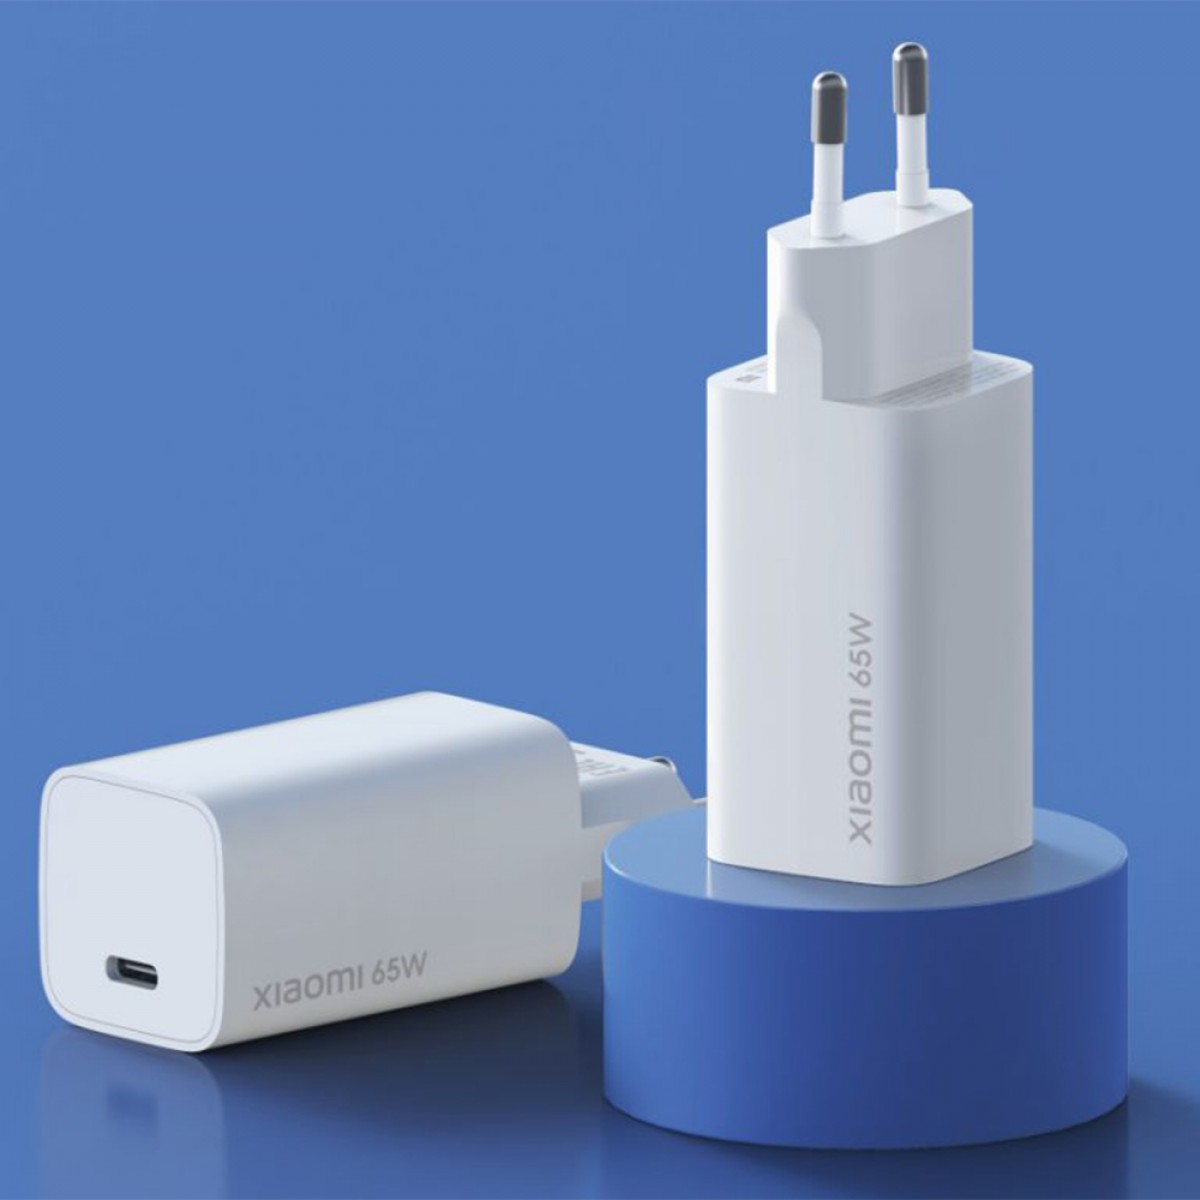 Xiaomi Mi 65W Fast Charge Charger With GaN Tech - VEVE